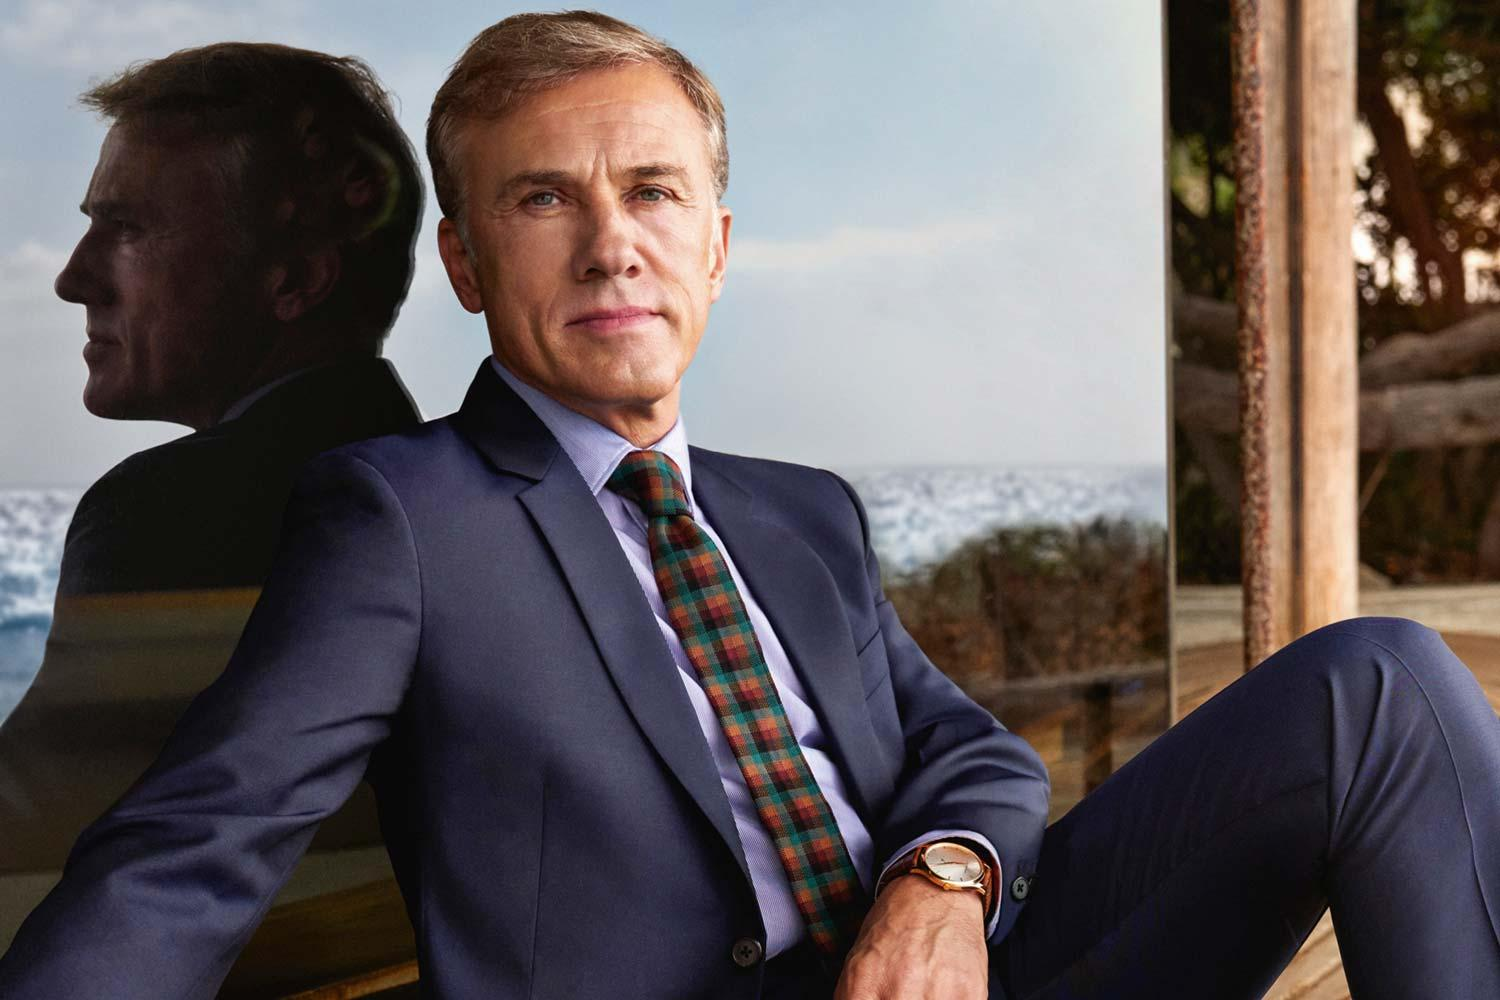 """Christoph Waltz won best supporting actor Oscars for his roles in a pair of Quentin Tarantino films, """"Inglorious Basterds"""" and """"Django Unchained."""""""